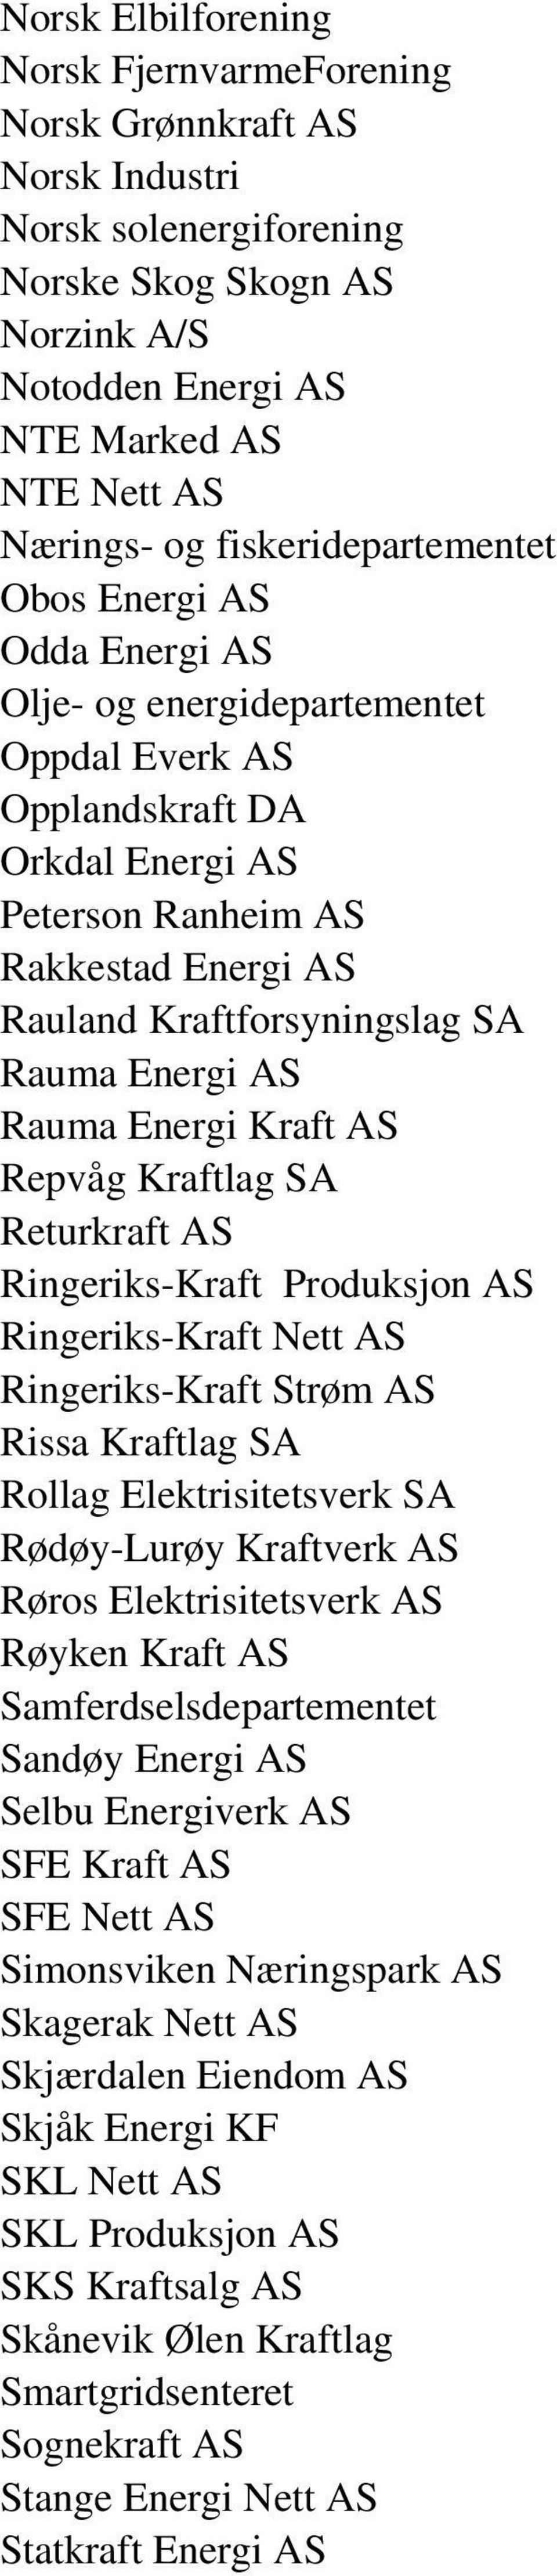 Rauma Energi AS Rauma Energi Kraft AS Repvåg Kraftlag SA Returkraft AS Ringeriks-Kraft Produksjon AS Ringeriks-Kraft Nett AS Ringeriks-Kraft Strøm AS Rissa Kraftlag SA Rollag Elektrisitetsverk SA